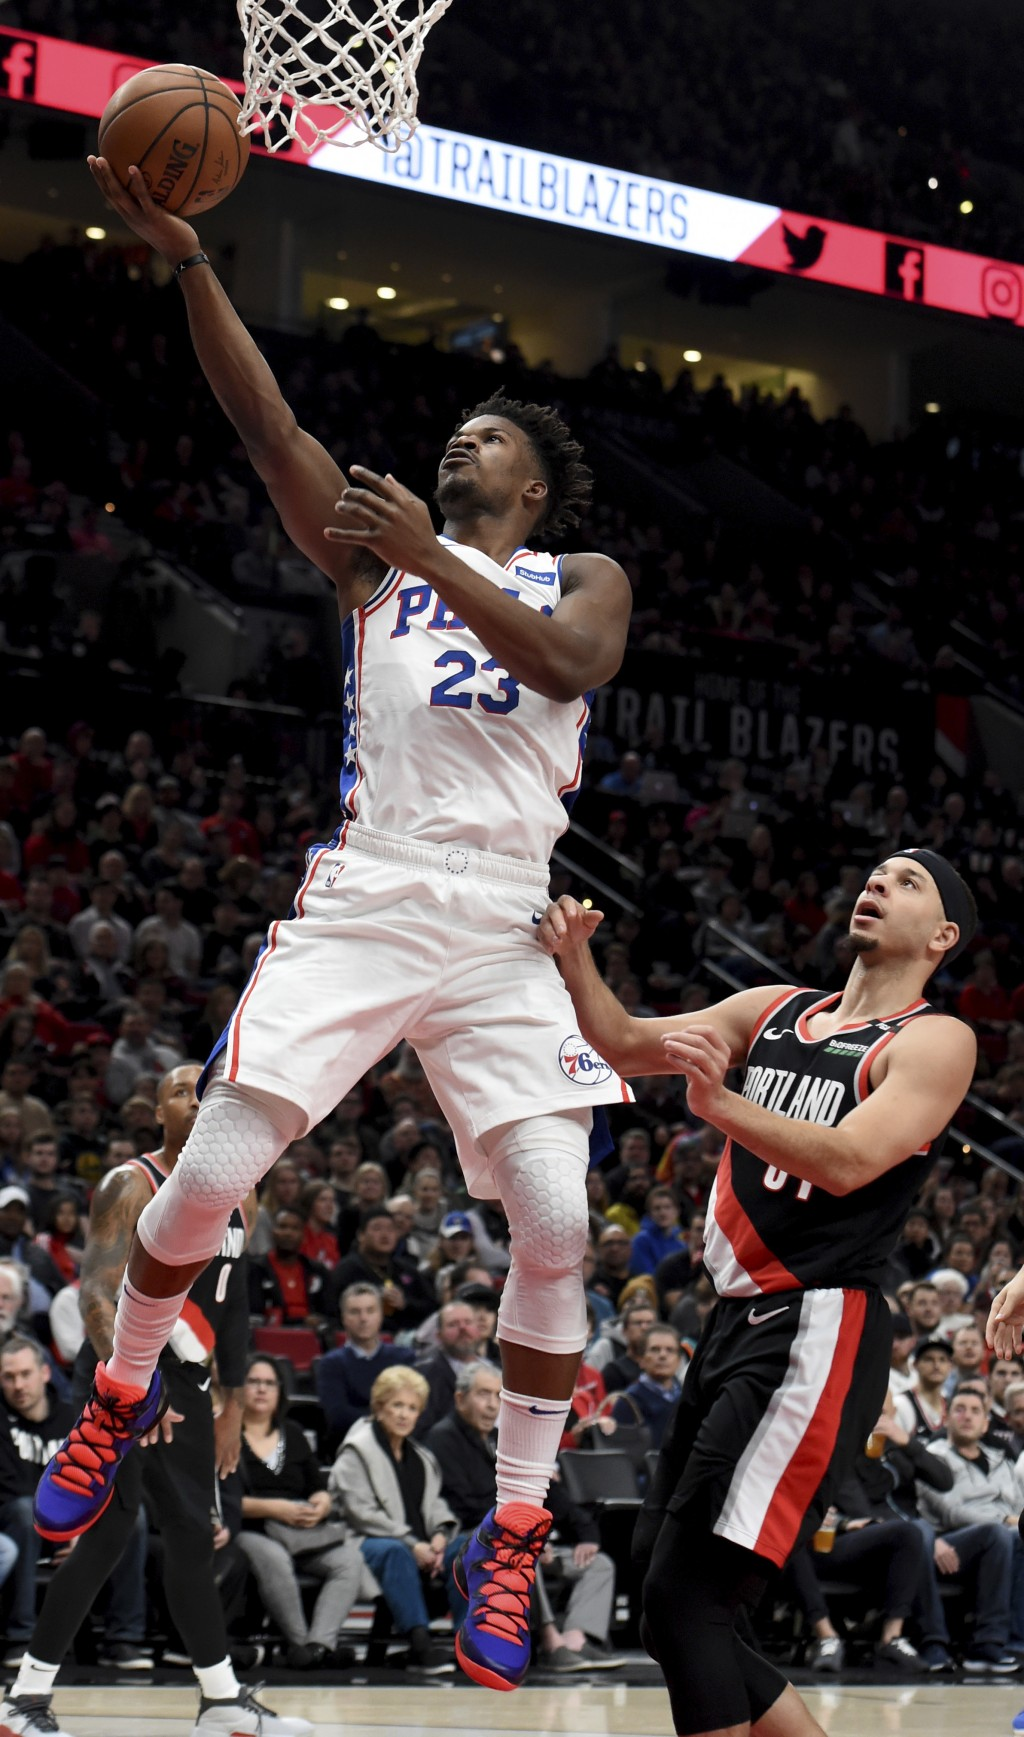 Philadelphia 76ers guard Jimmy Butler, left, drives to the basket on Portland Trail Blazers guard Seth Curry, right, during the first half of an NBA b...